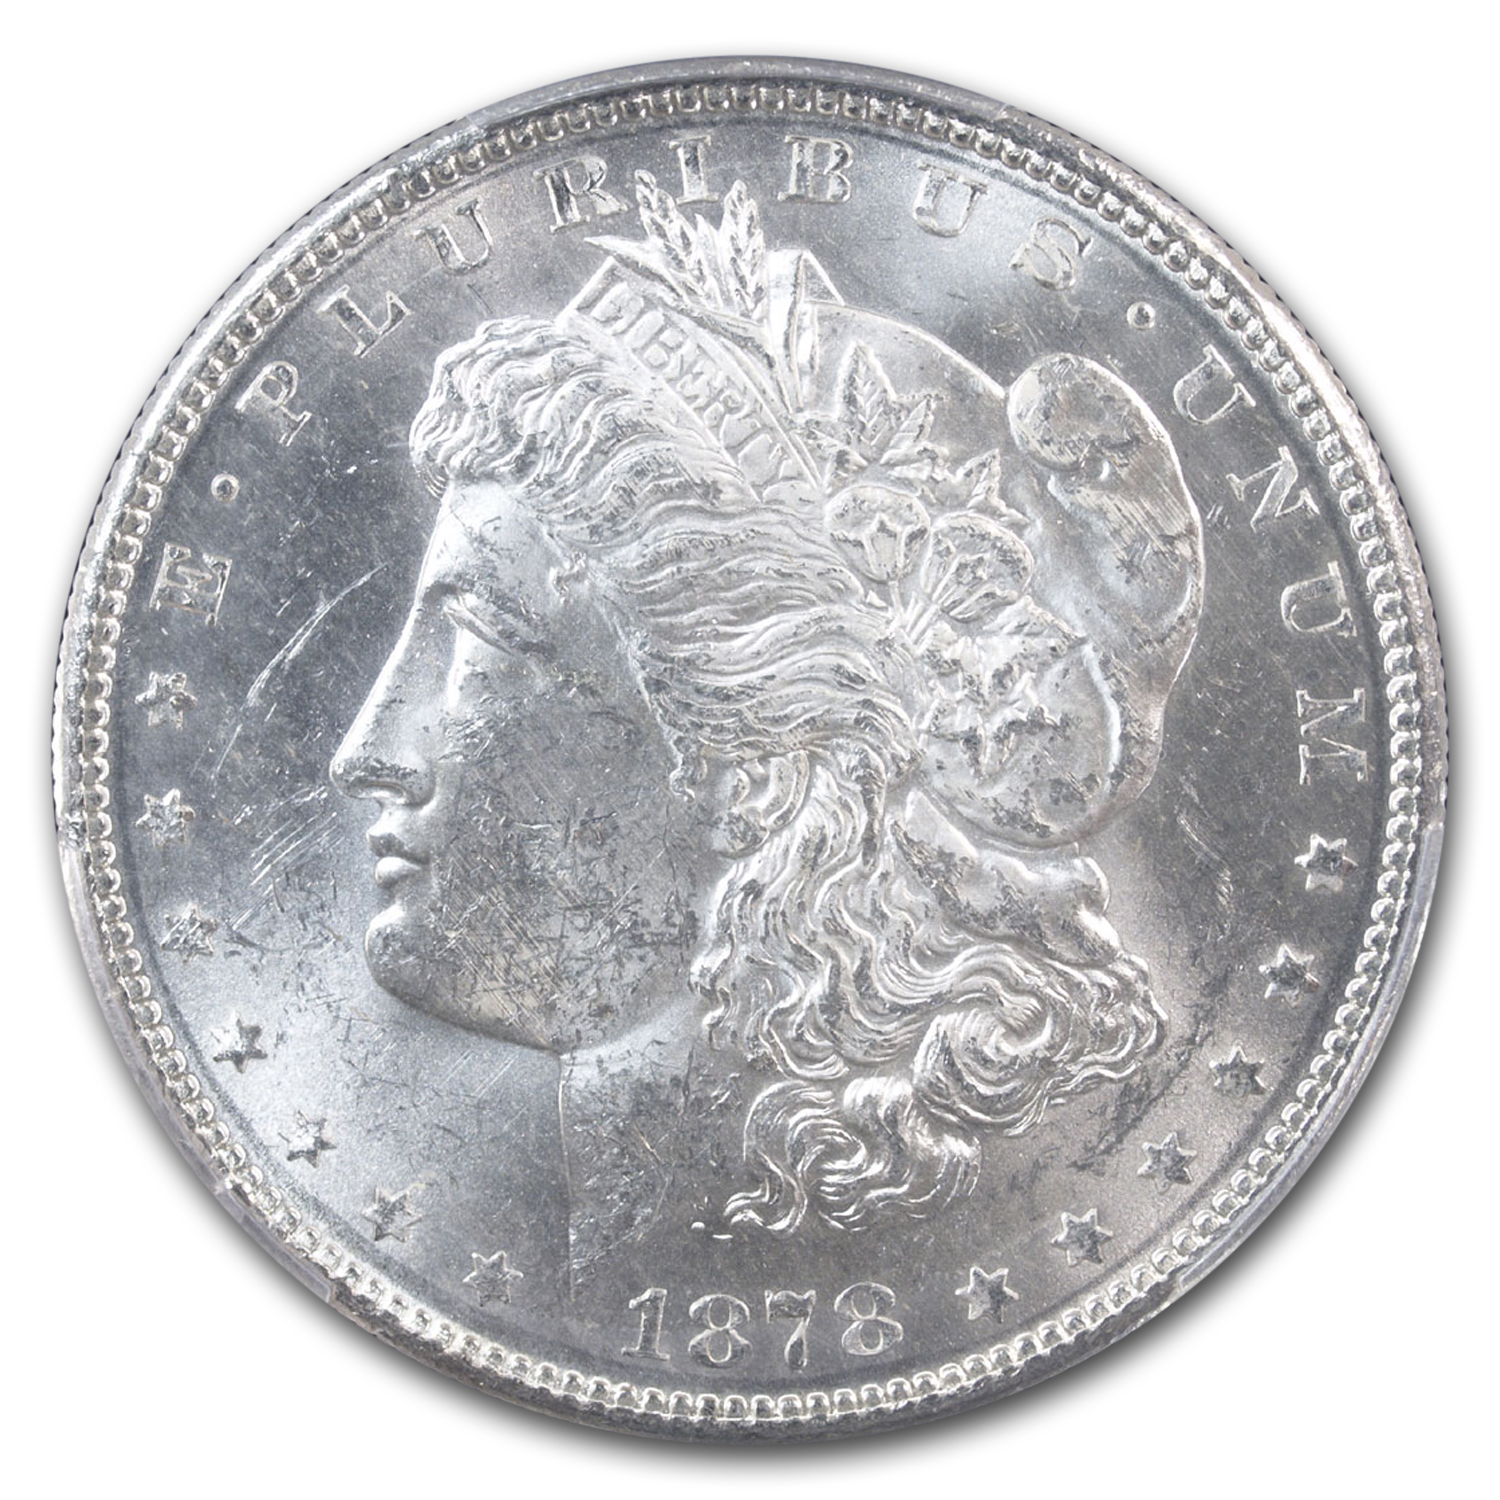 1878-S Morgan Dollar - MS-62 PCGS